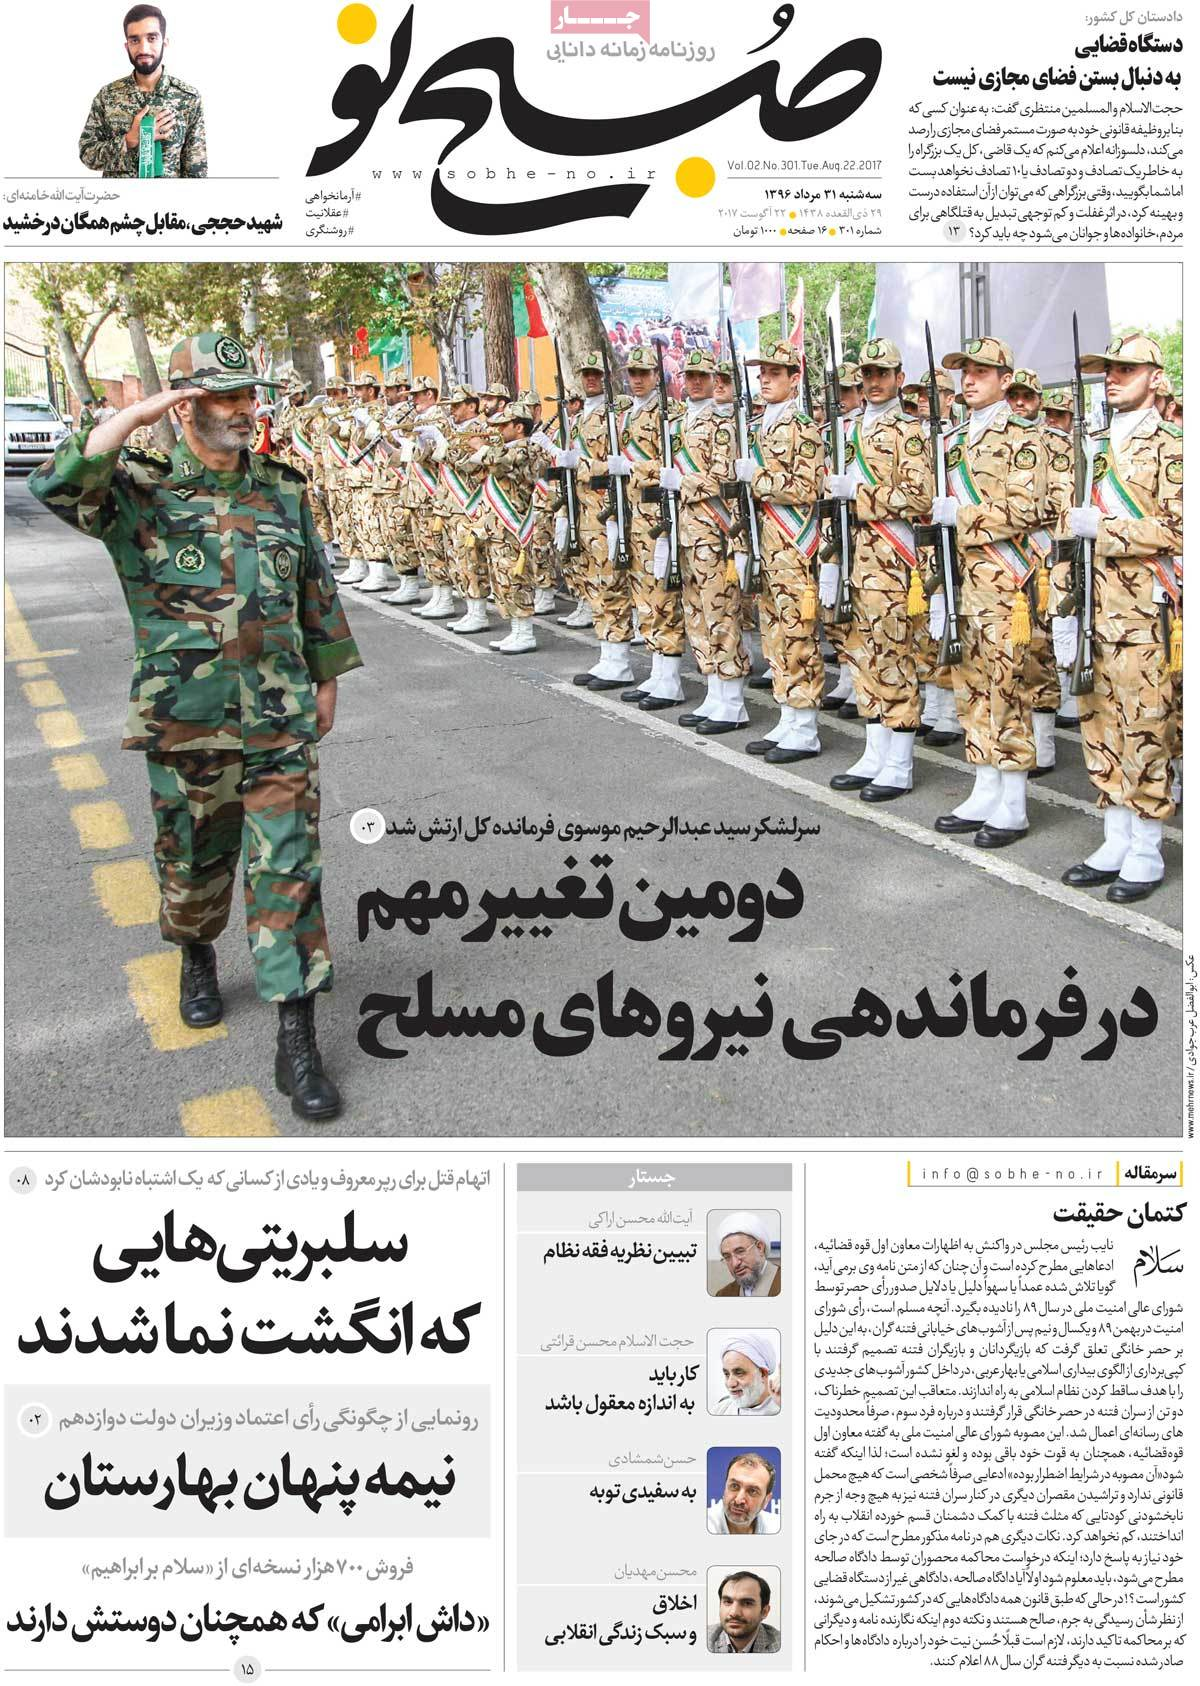 A Look at Iranian Newspaper Front Pages on August 22 - sobheno